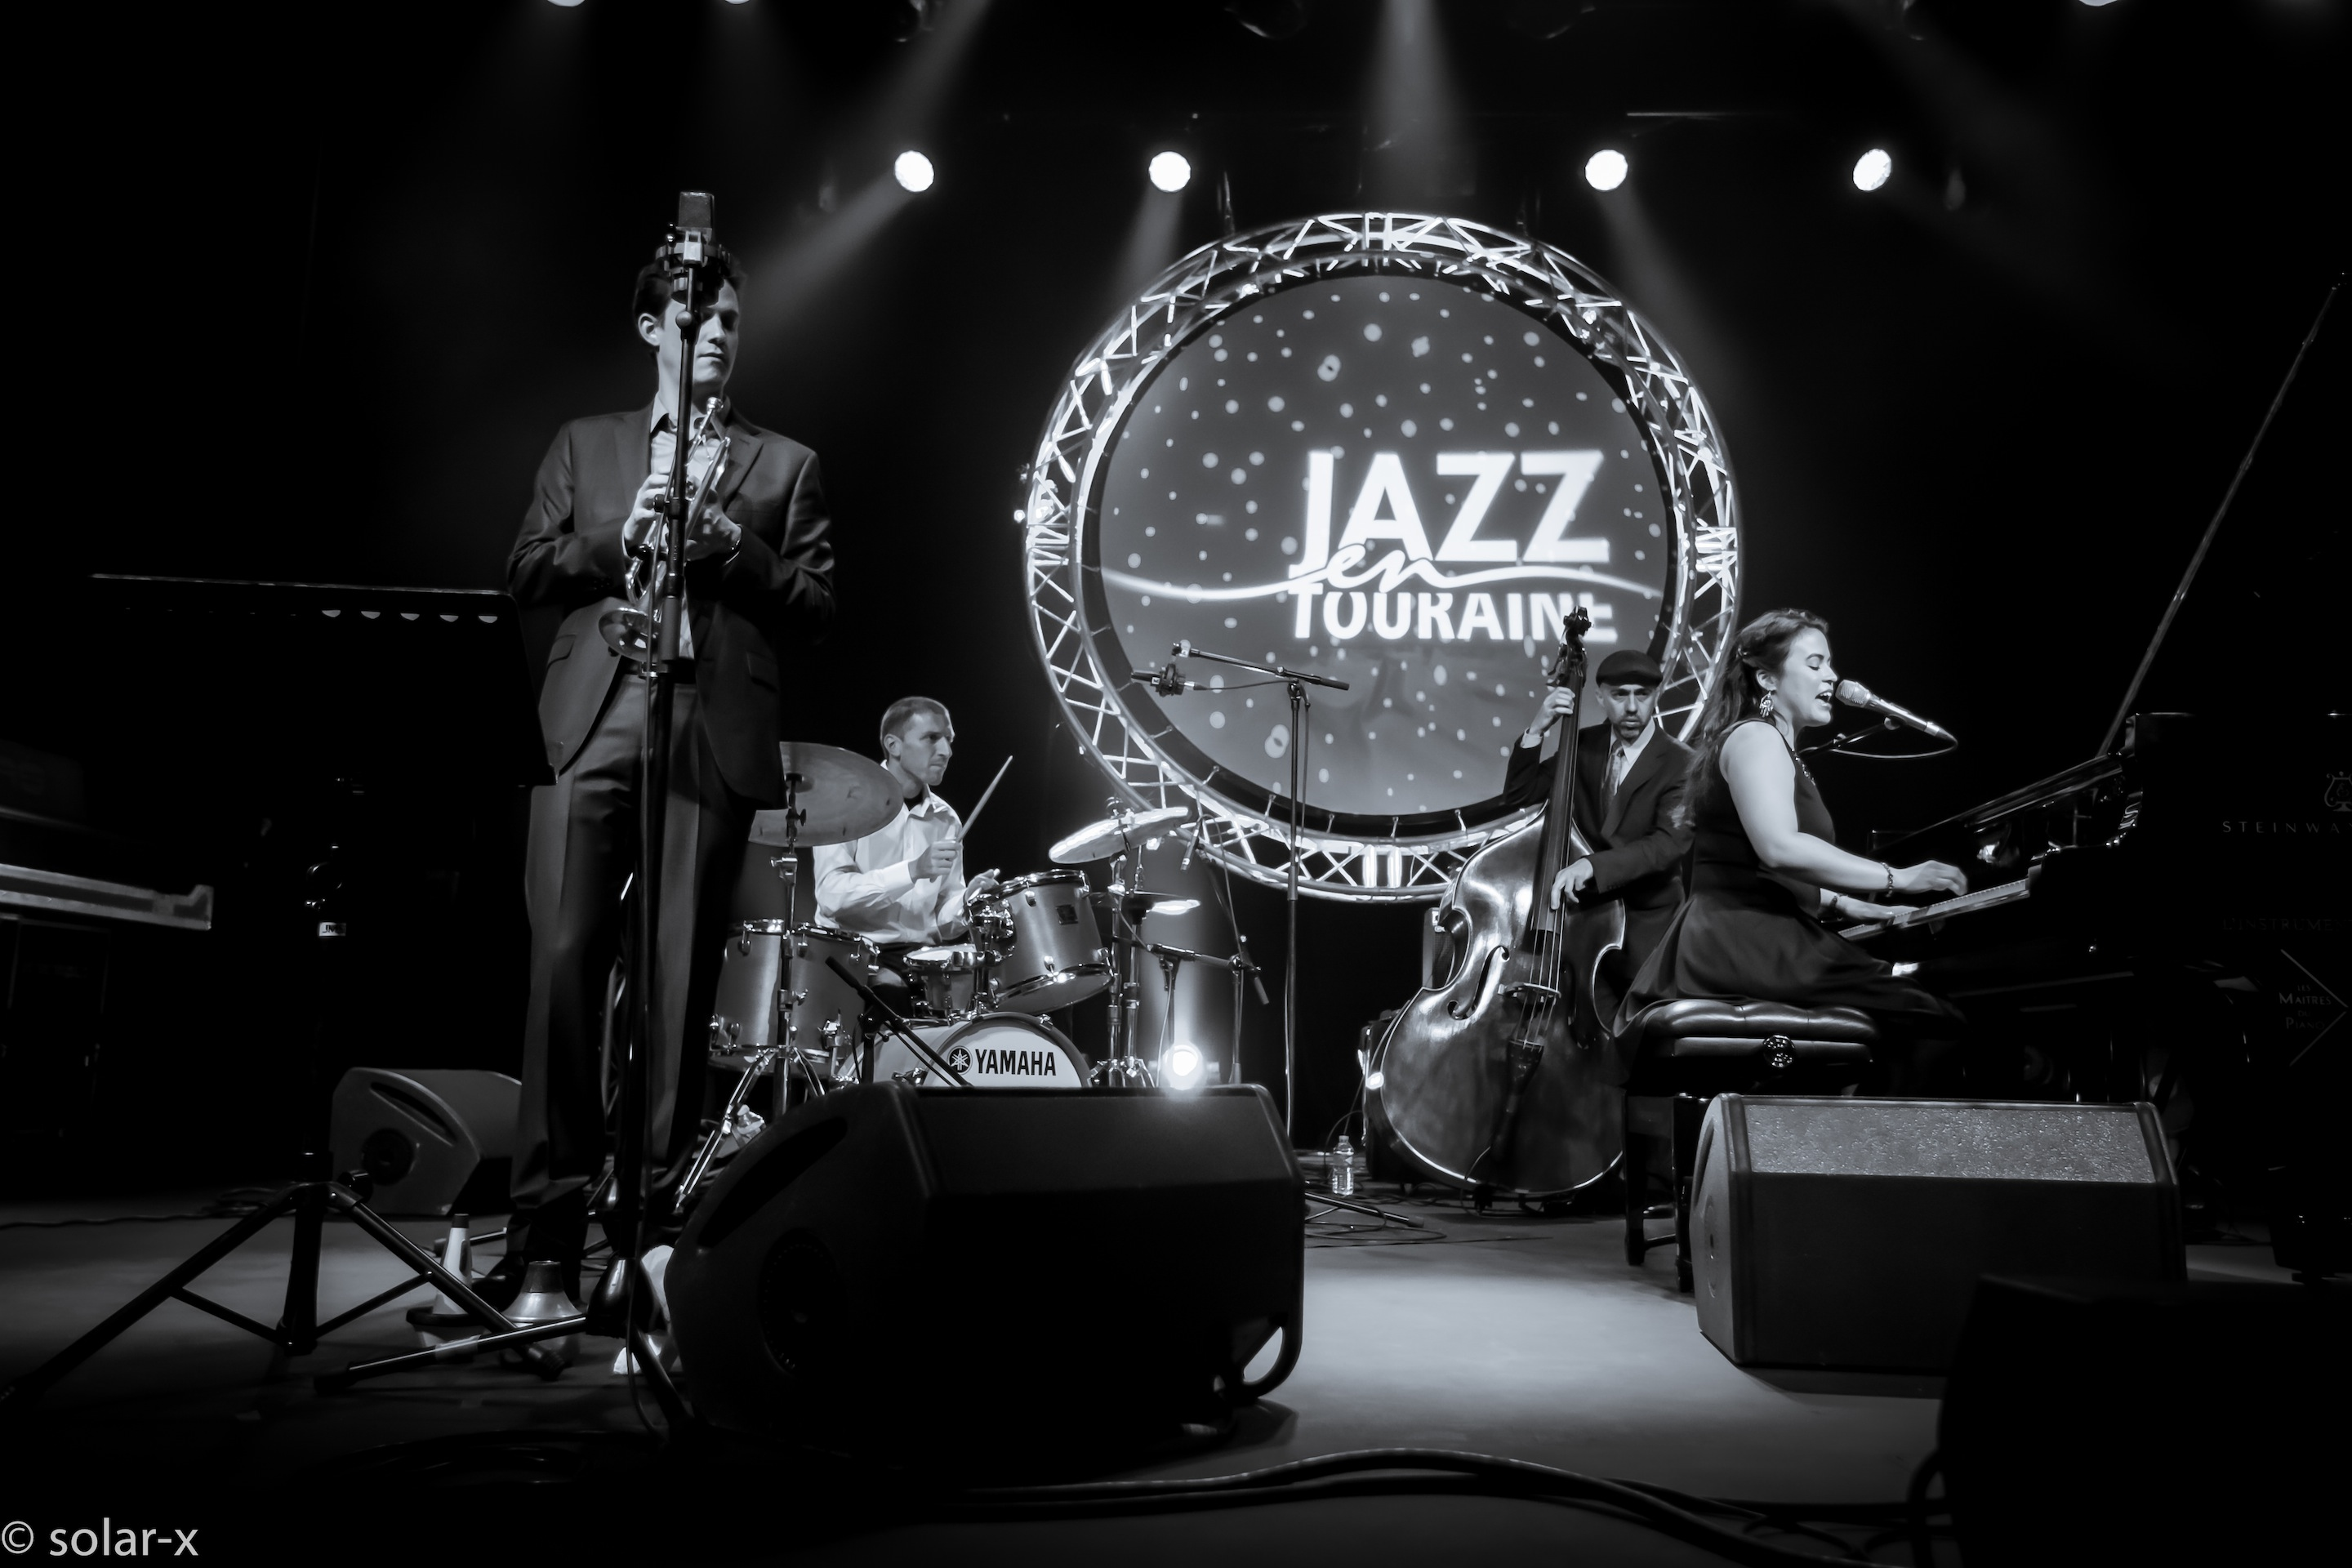 Jazz en Touraine Festival - France